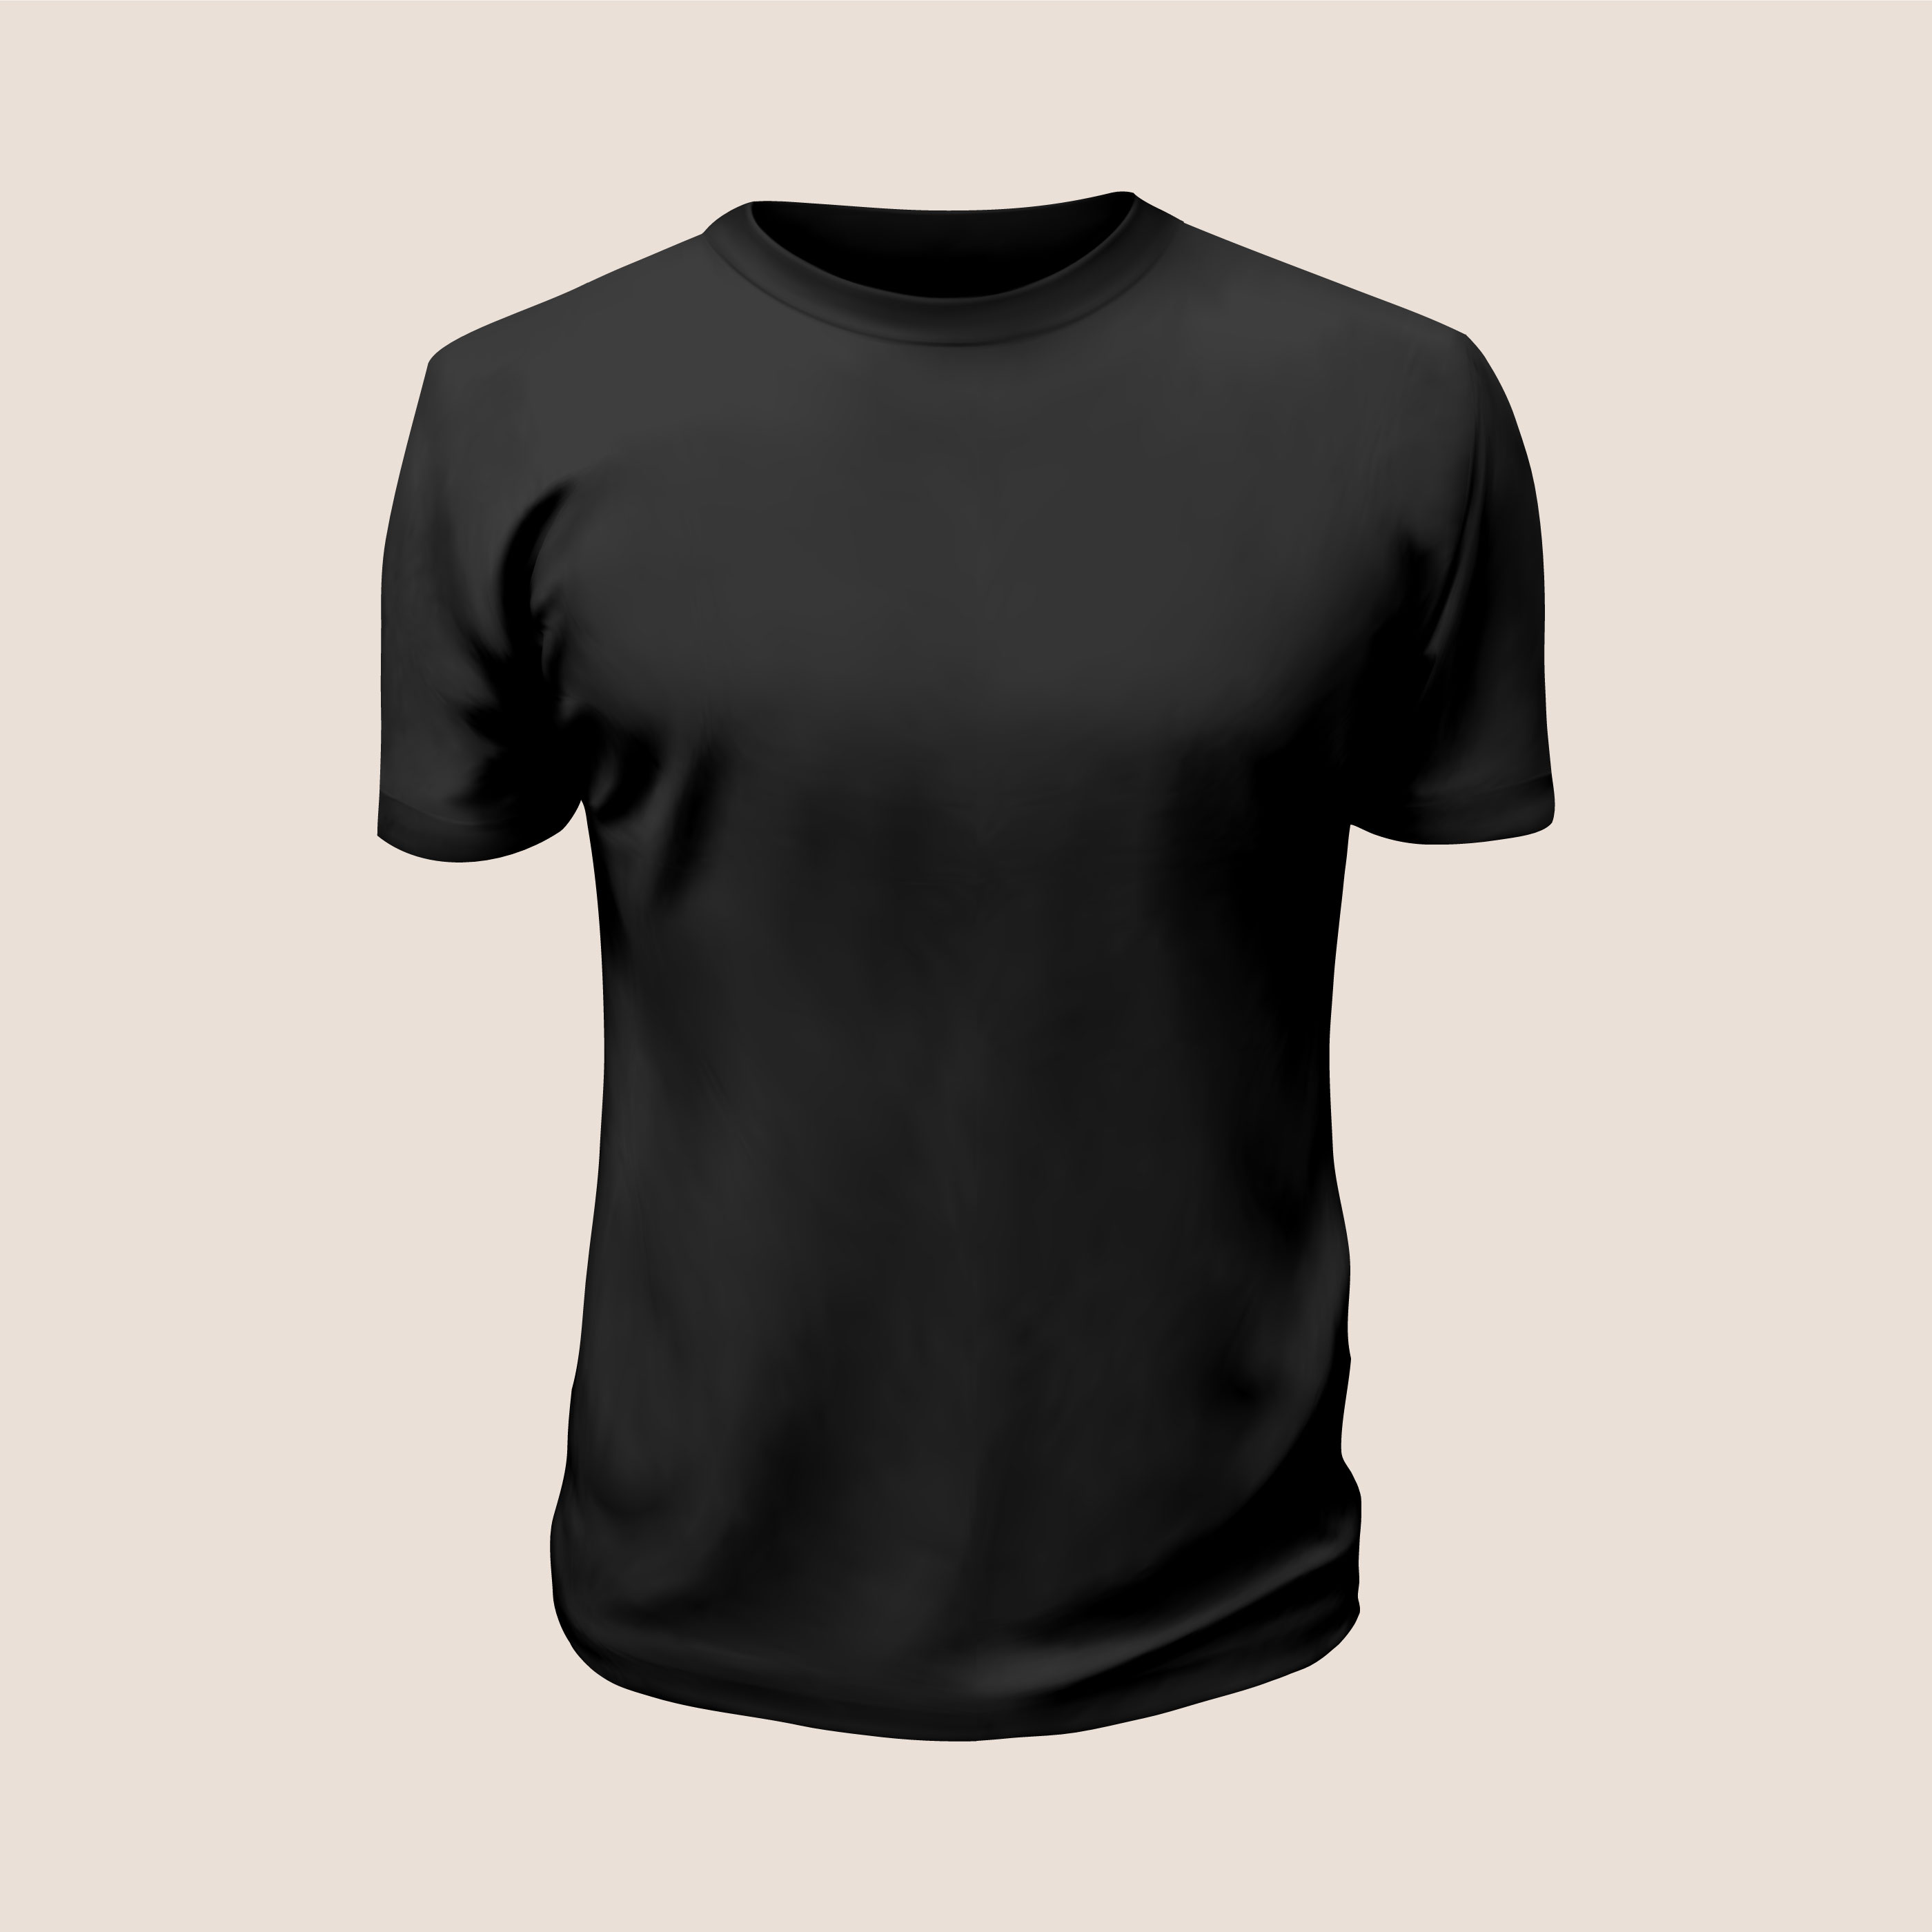 0ac7f36a Tshirt Vector: Black Shirt - Download Free Vector Art, Stock Graphics &  Images